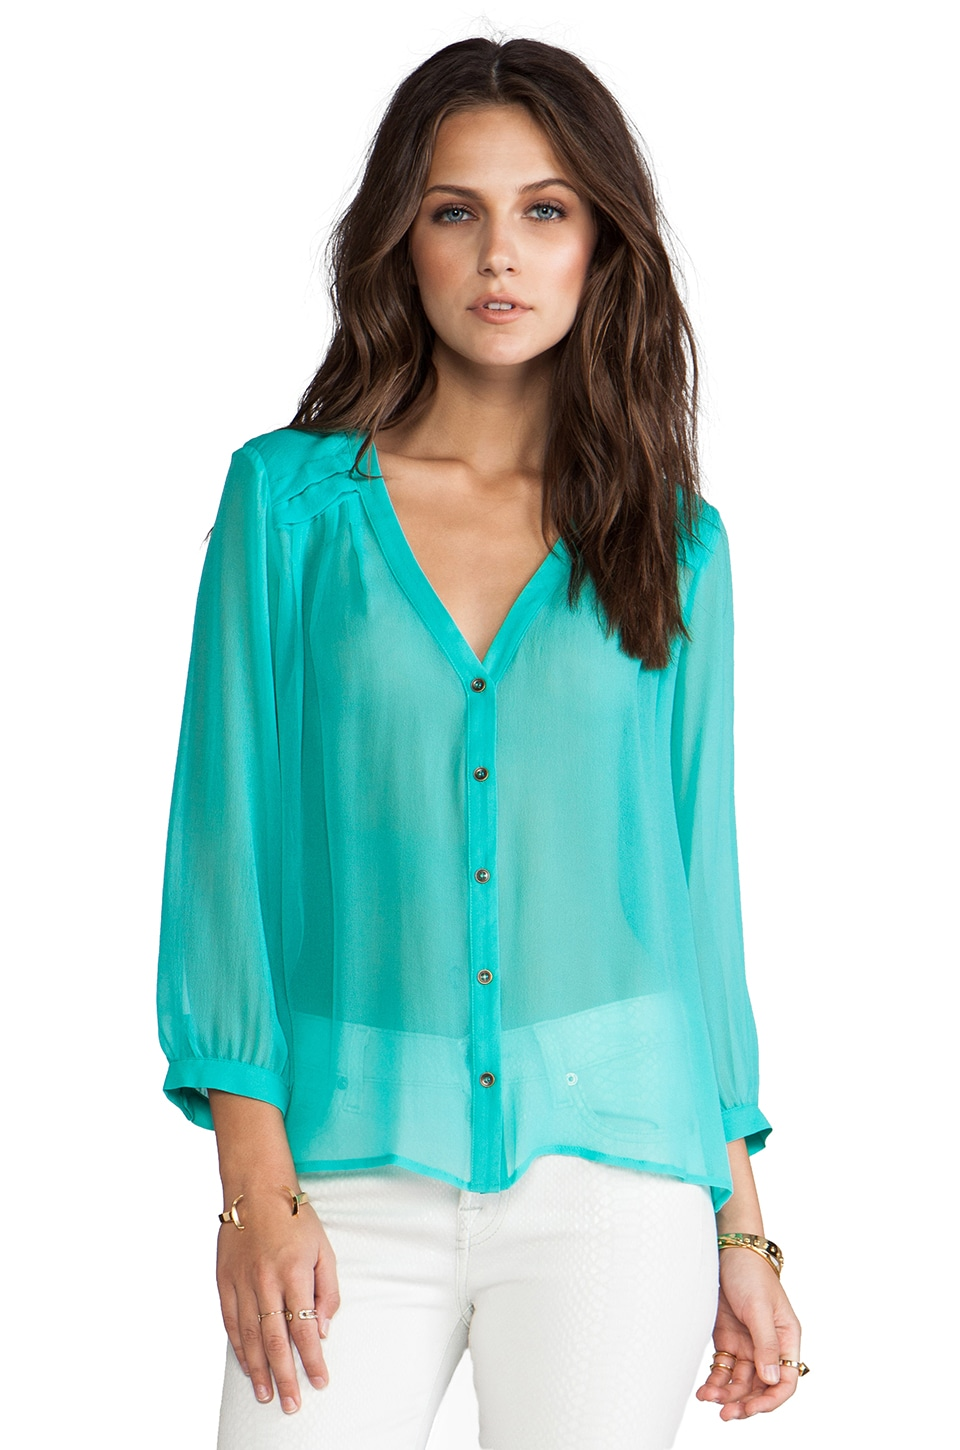 Twelfth Street By Cynthia Vincent Reckless Daughter Pleated Yoke Top in Aqua